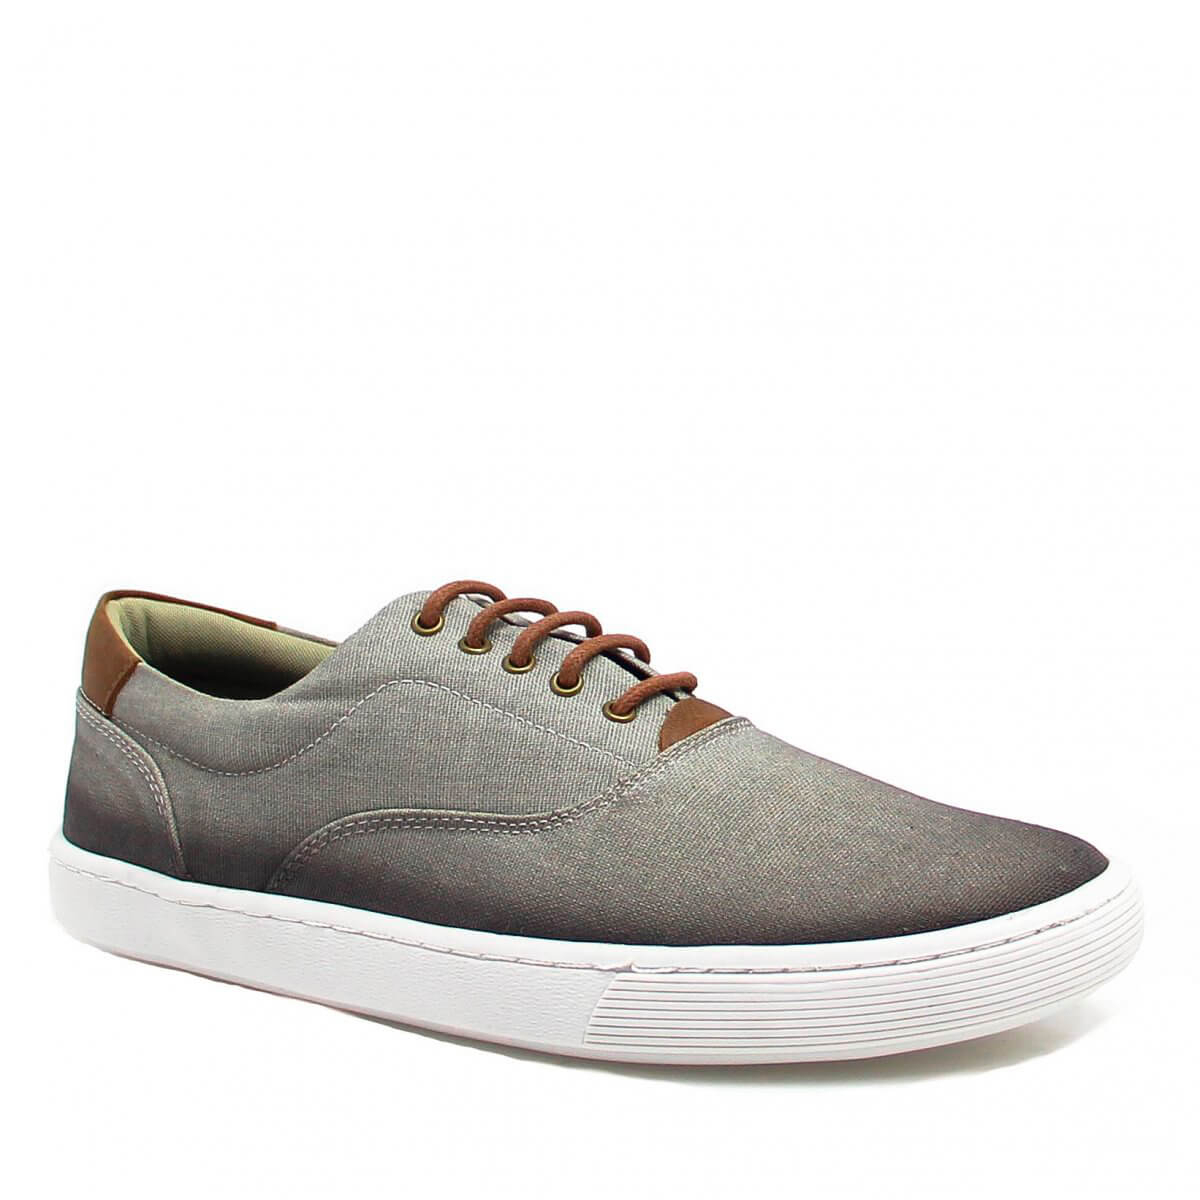 Sapatênis Casual Zariff Shoes Jeans Cinza